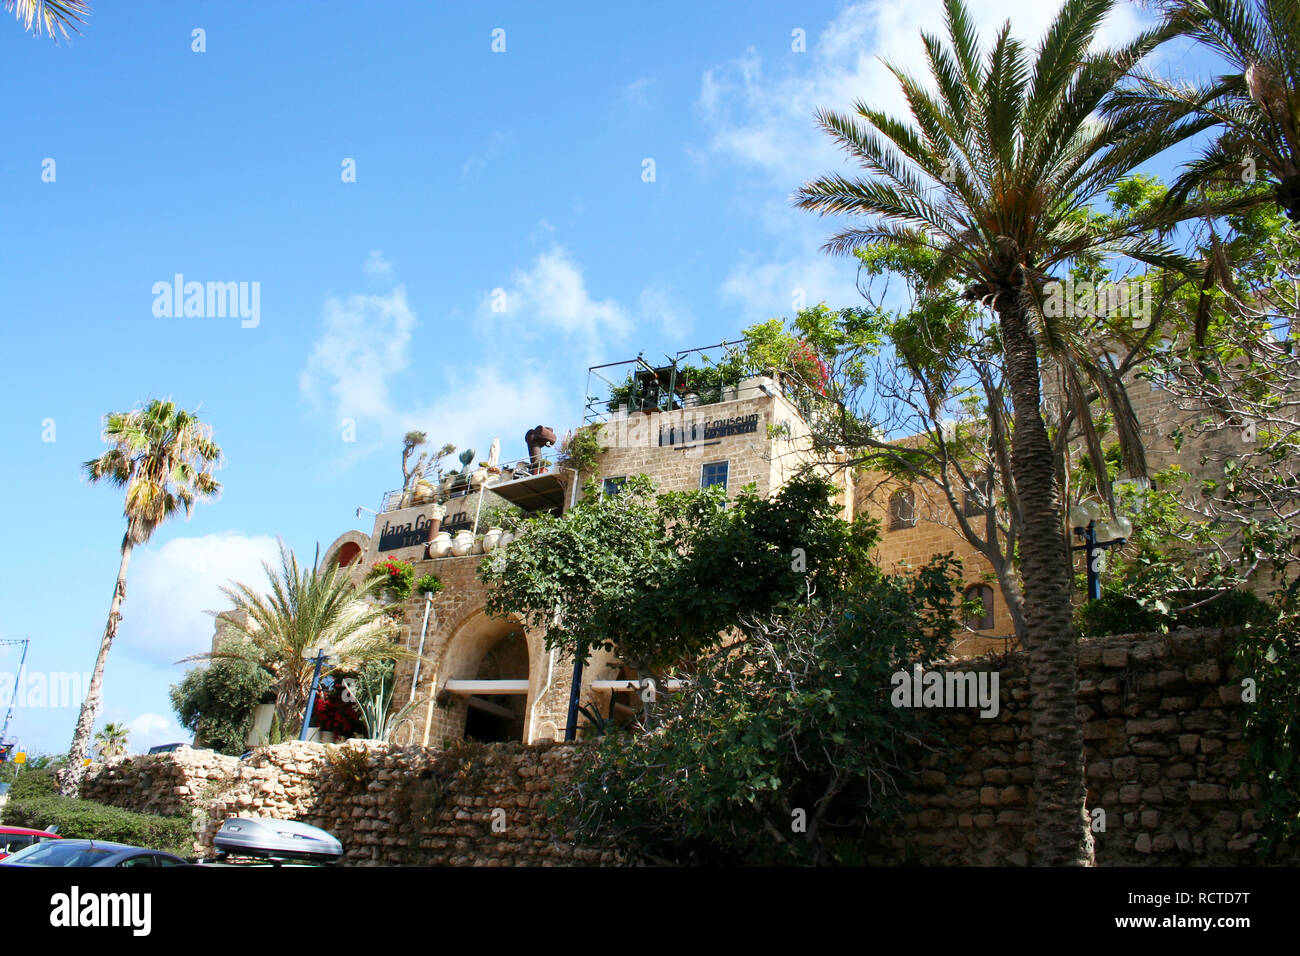 Tel Aviv, Israel - June 7, 2013: Ilana Goor Residence and Museum situated in the historical part of Jaffa. Tel Aviv, Israel - Stock Image